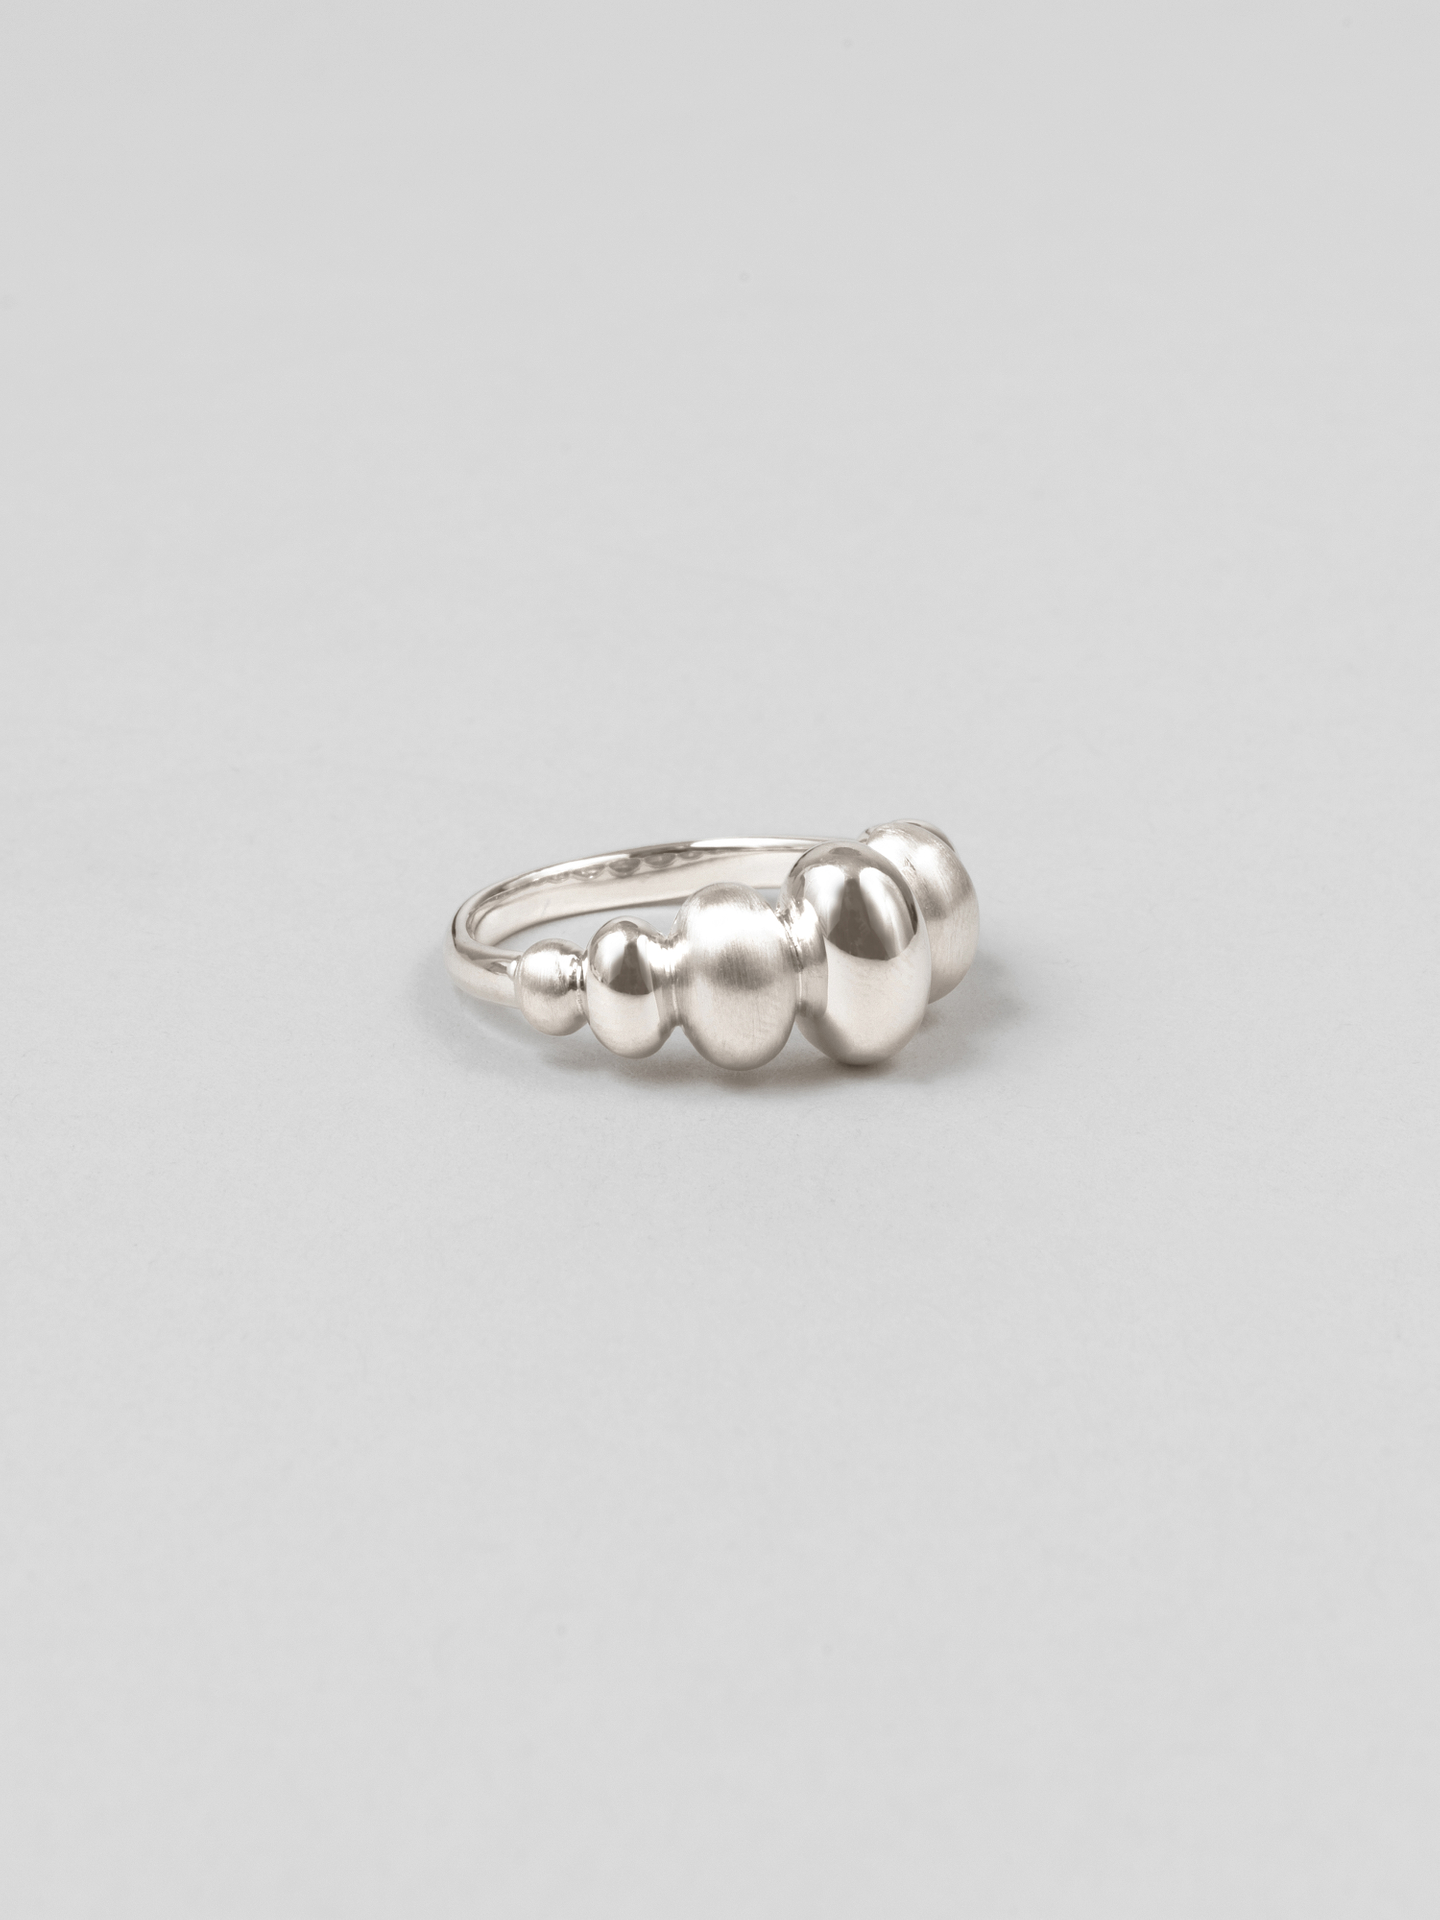 Small Immortality Ring